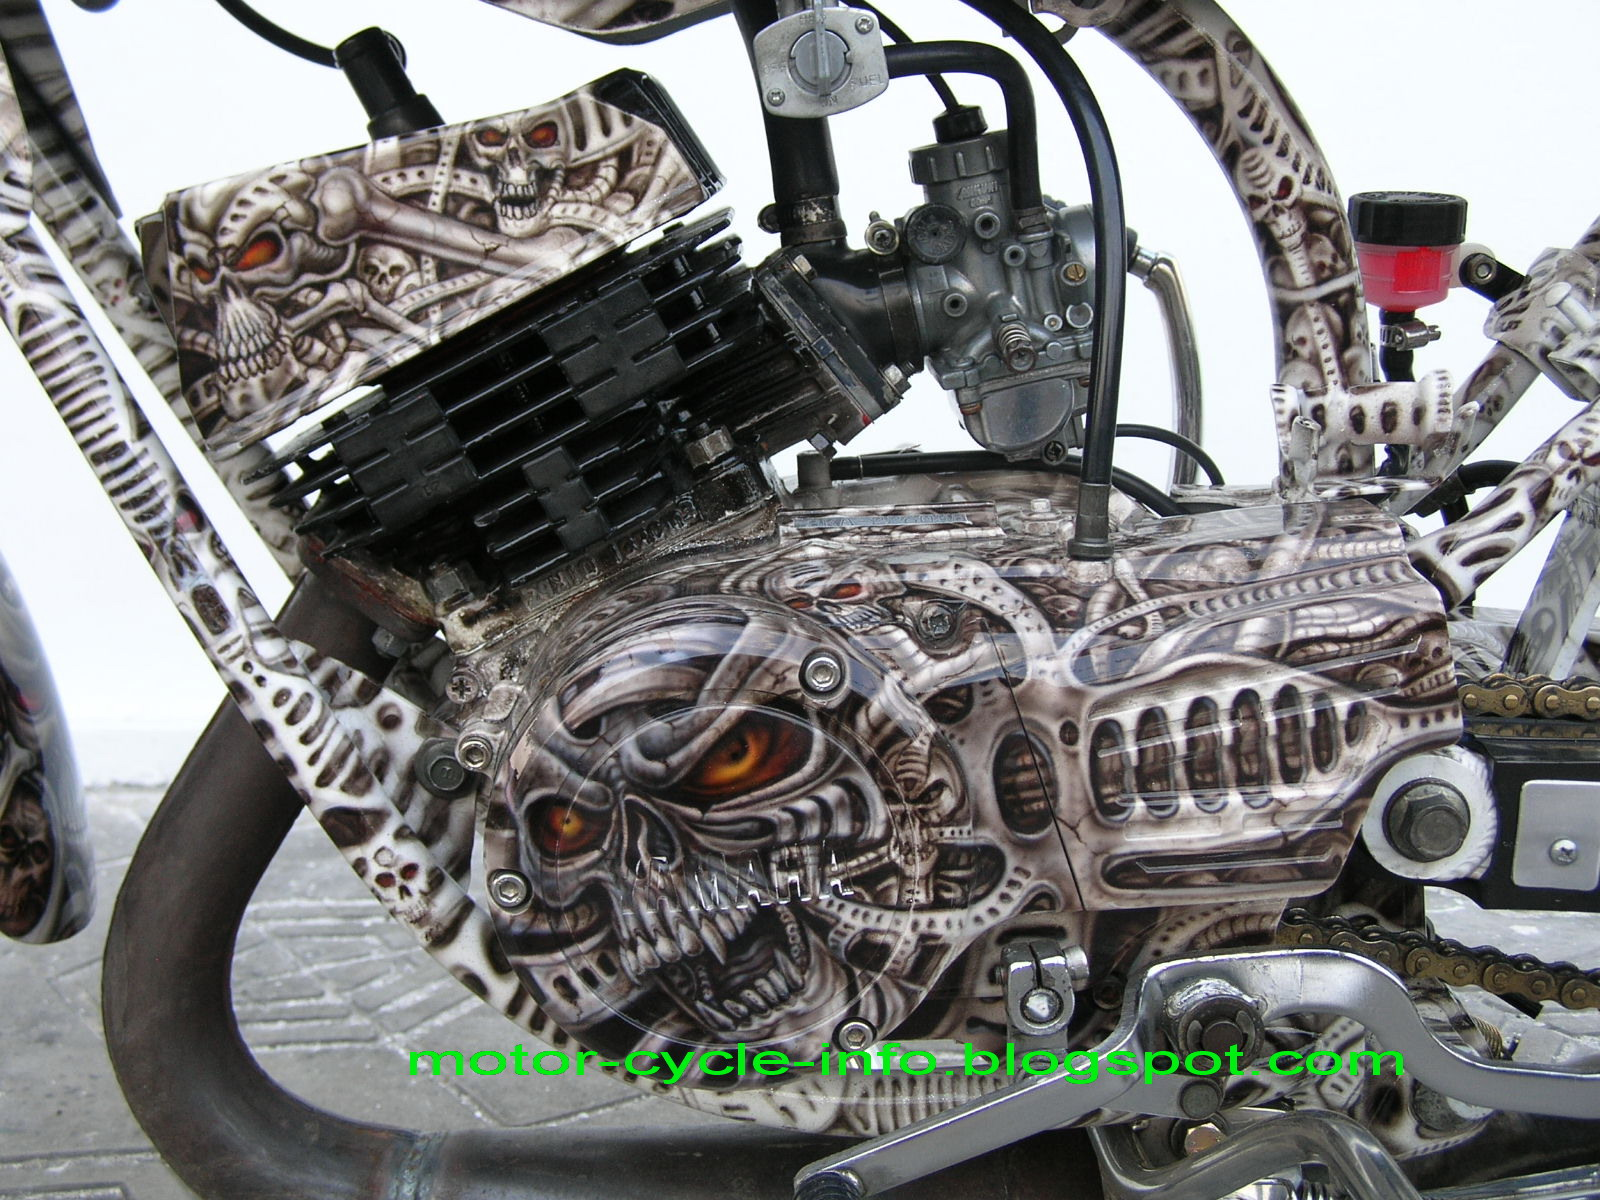 modivication of vehicle: modif yamaha rx king airbrush extreme